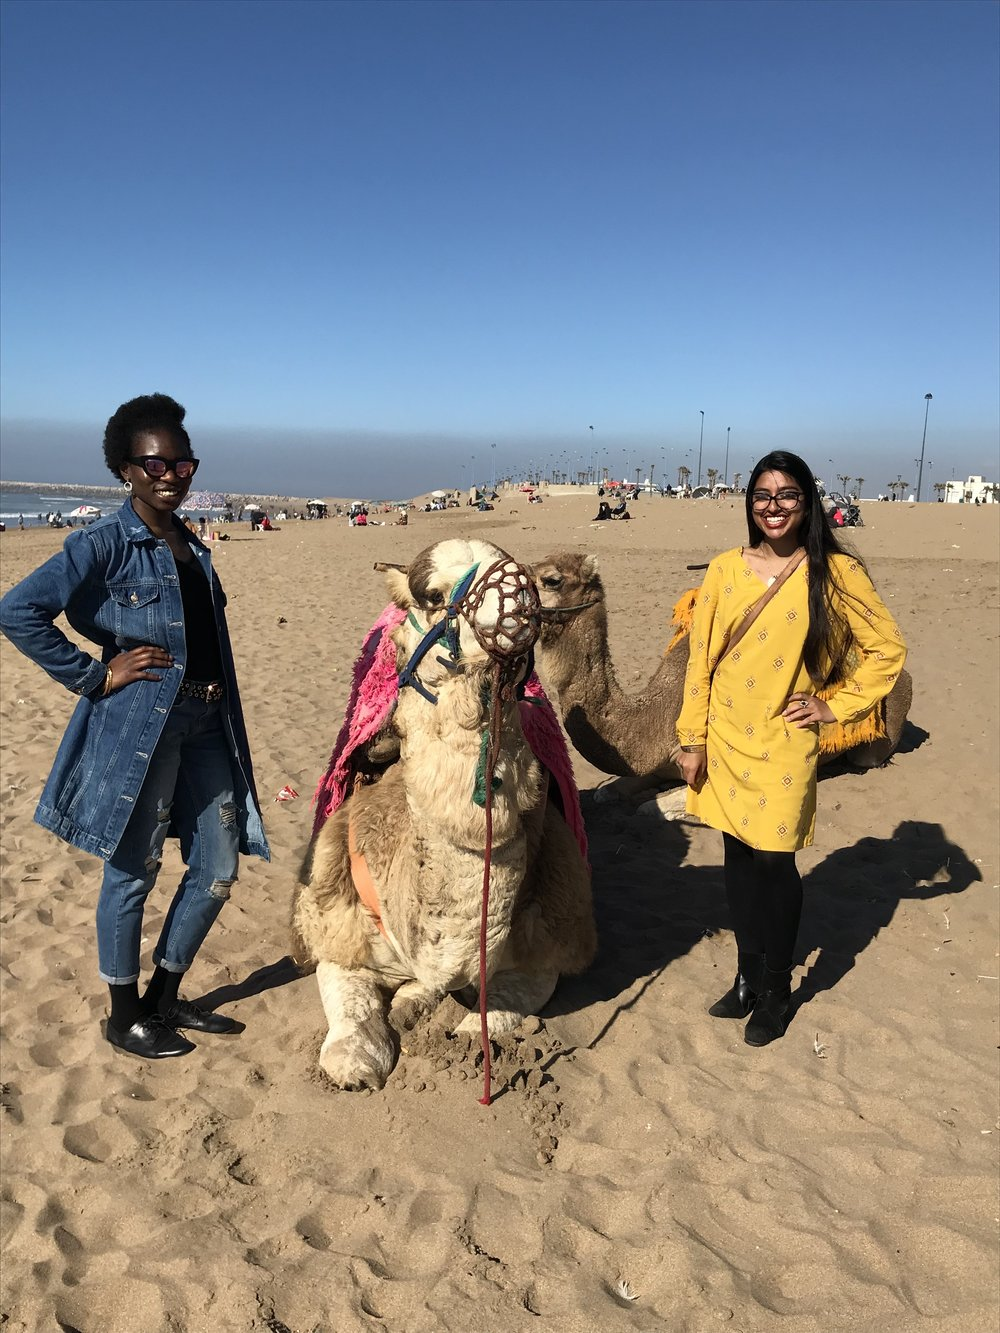 Camel riding on the beach. Photo Credit: Ammarah Rehman, 2018